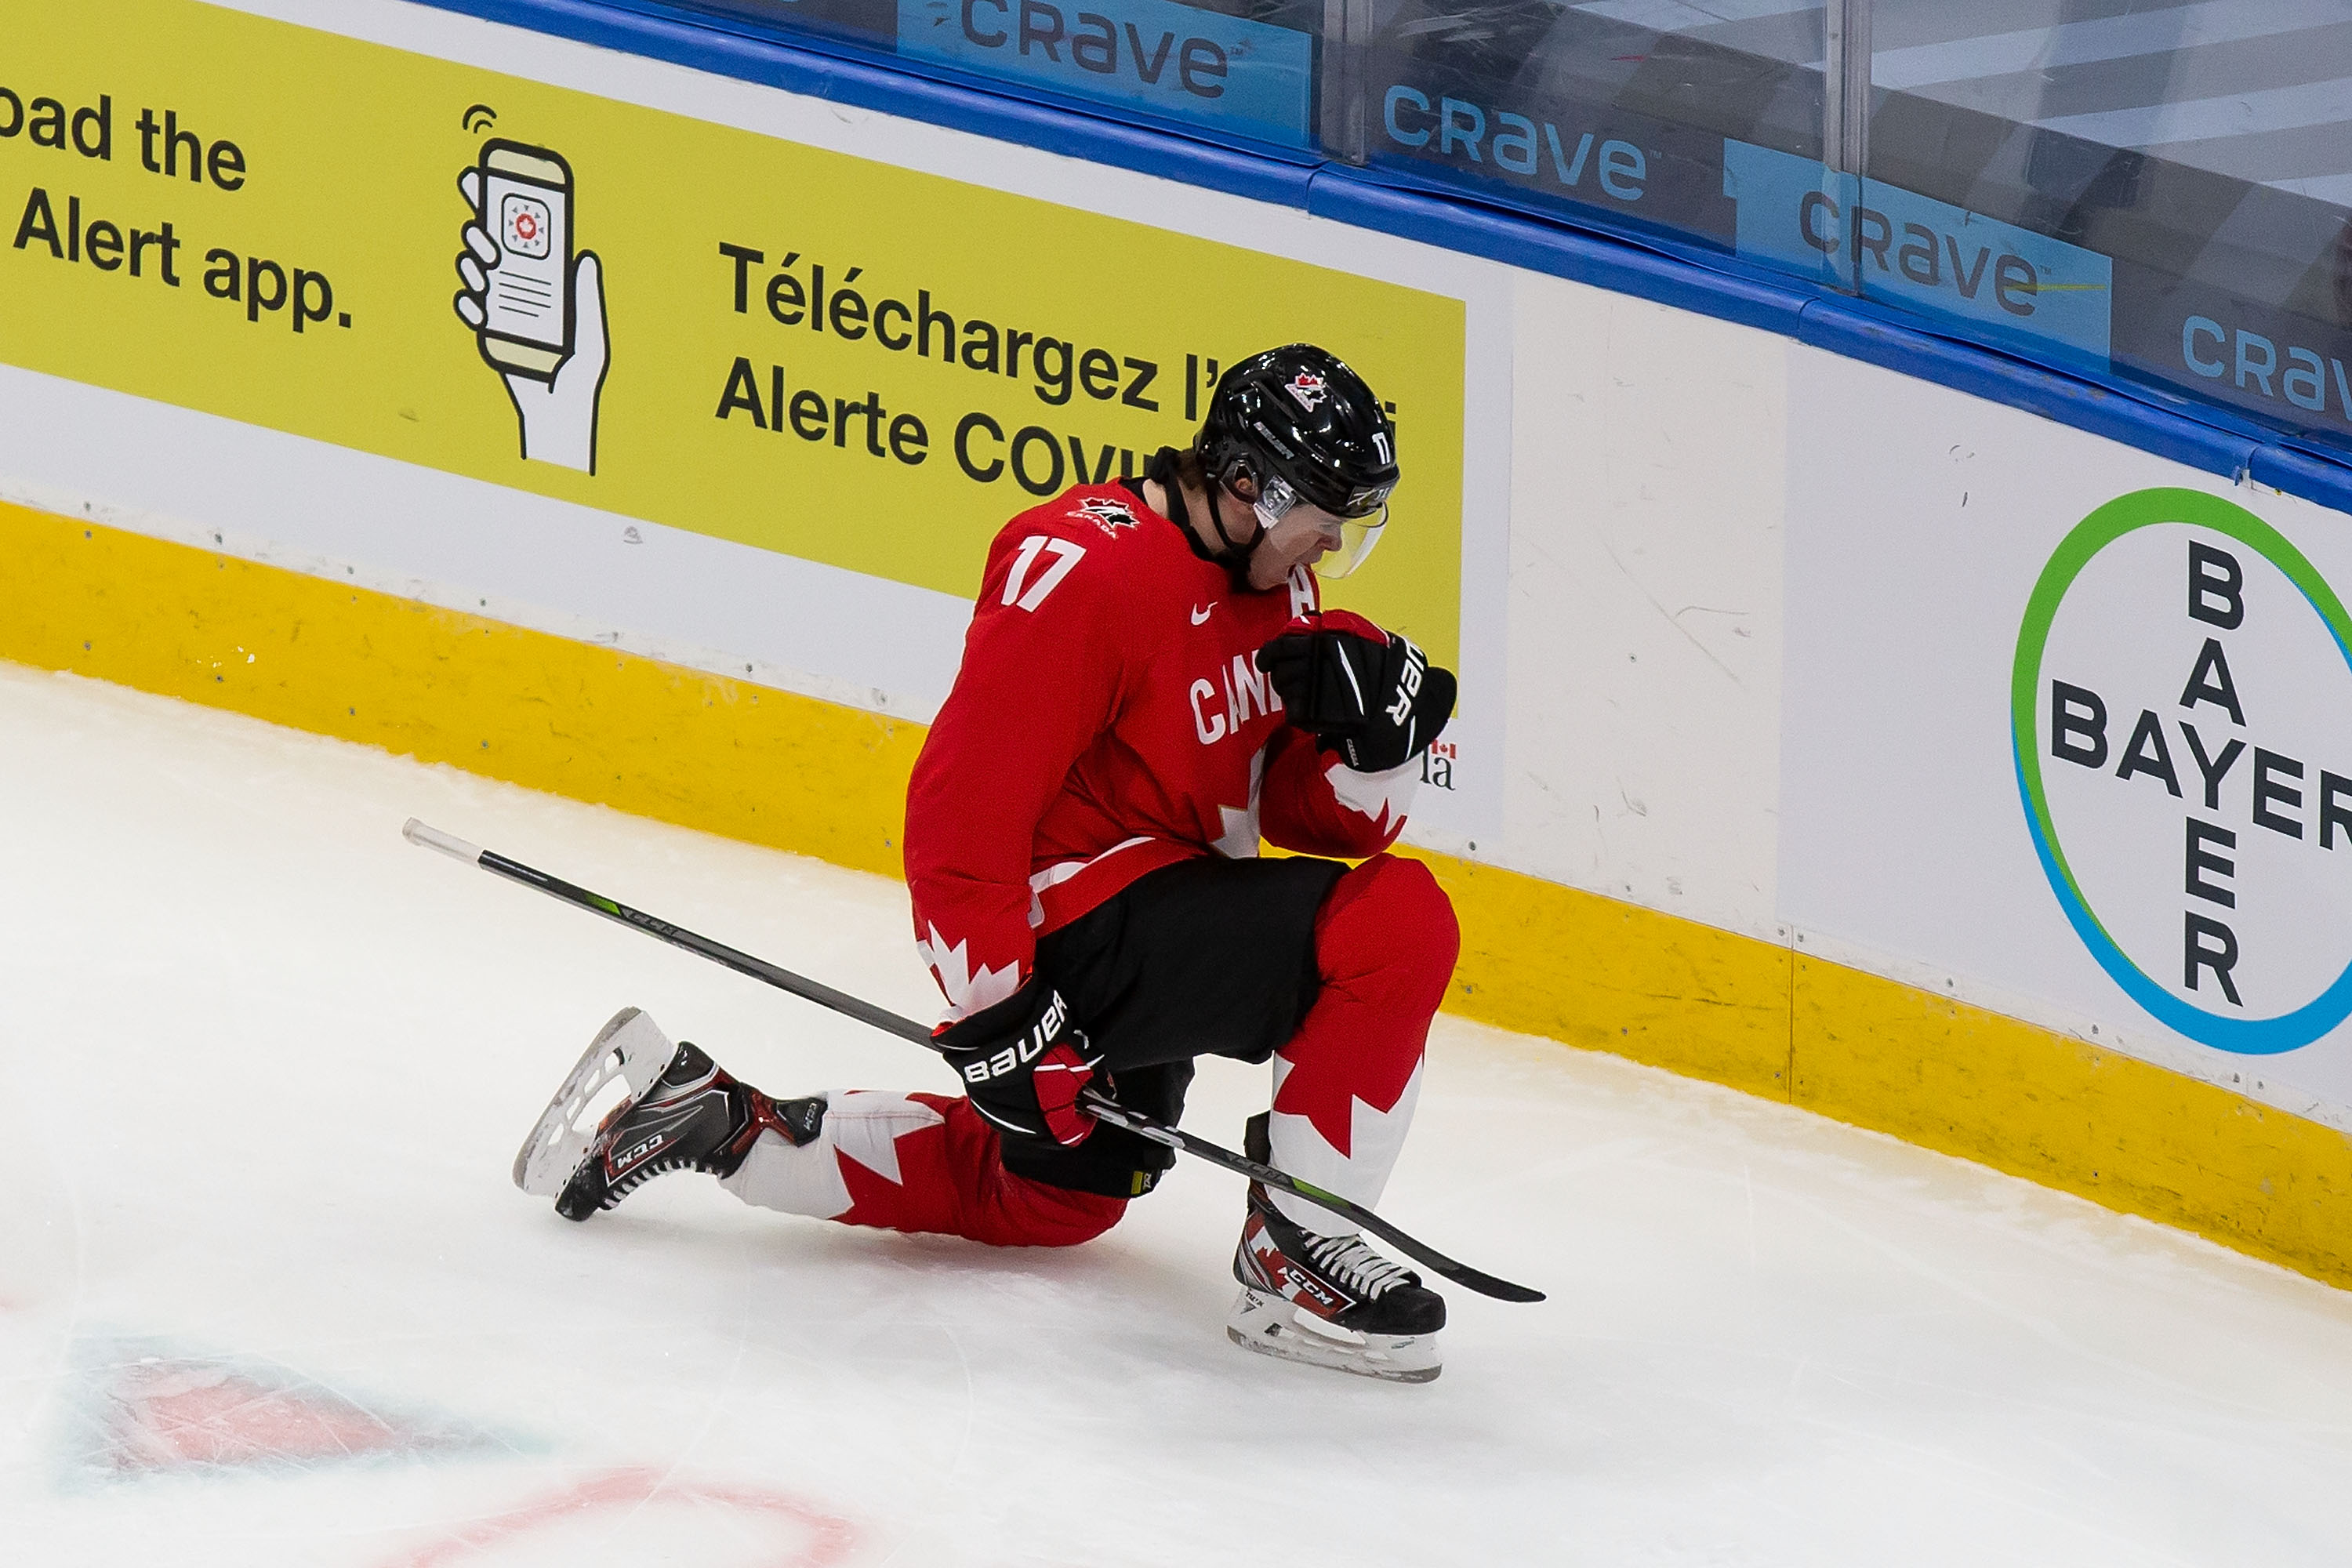 Connor McMichael #17 of Canada celebrates his goal against Russia during the 2021 IIHF World Junior Championship semifinals at Rogers Place on January 4, 2021 in Edmonton, Canada.